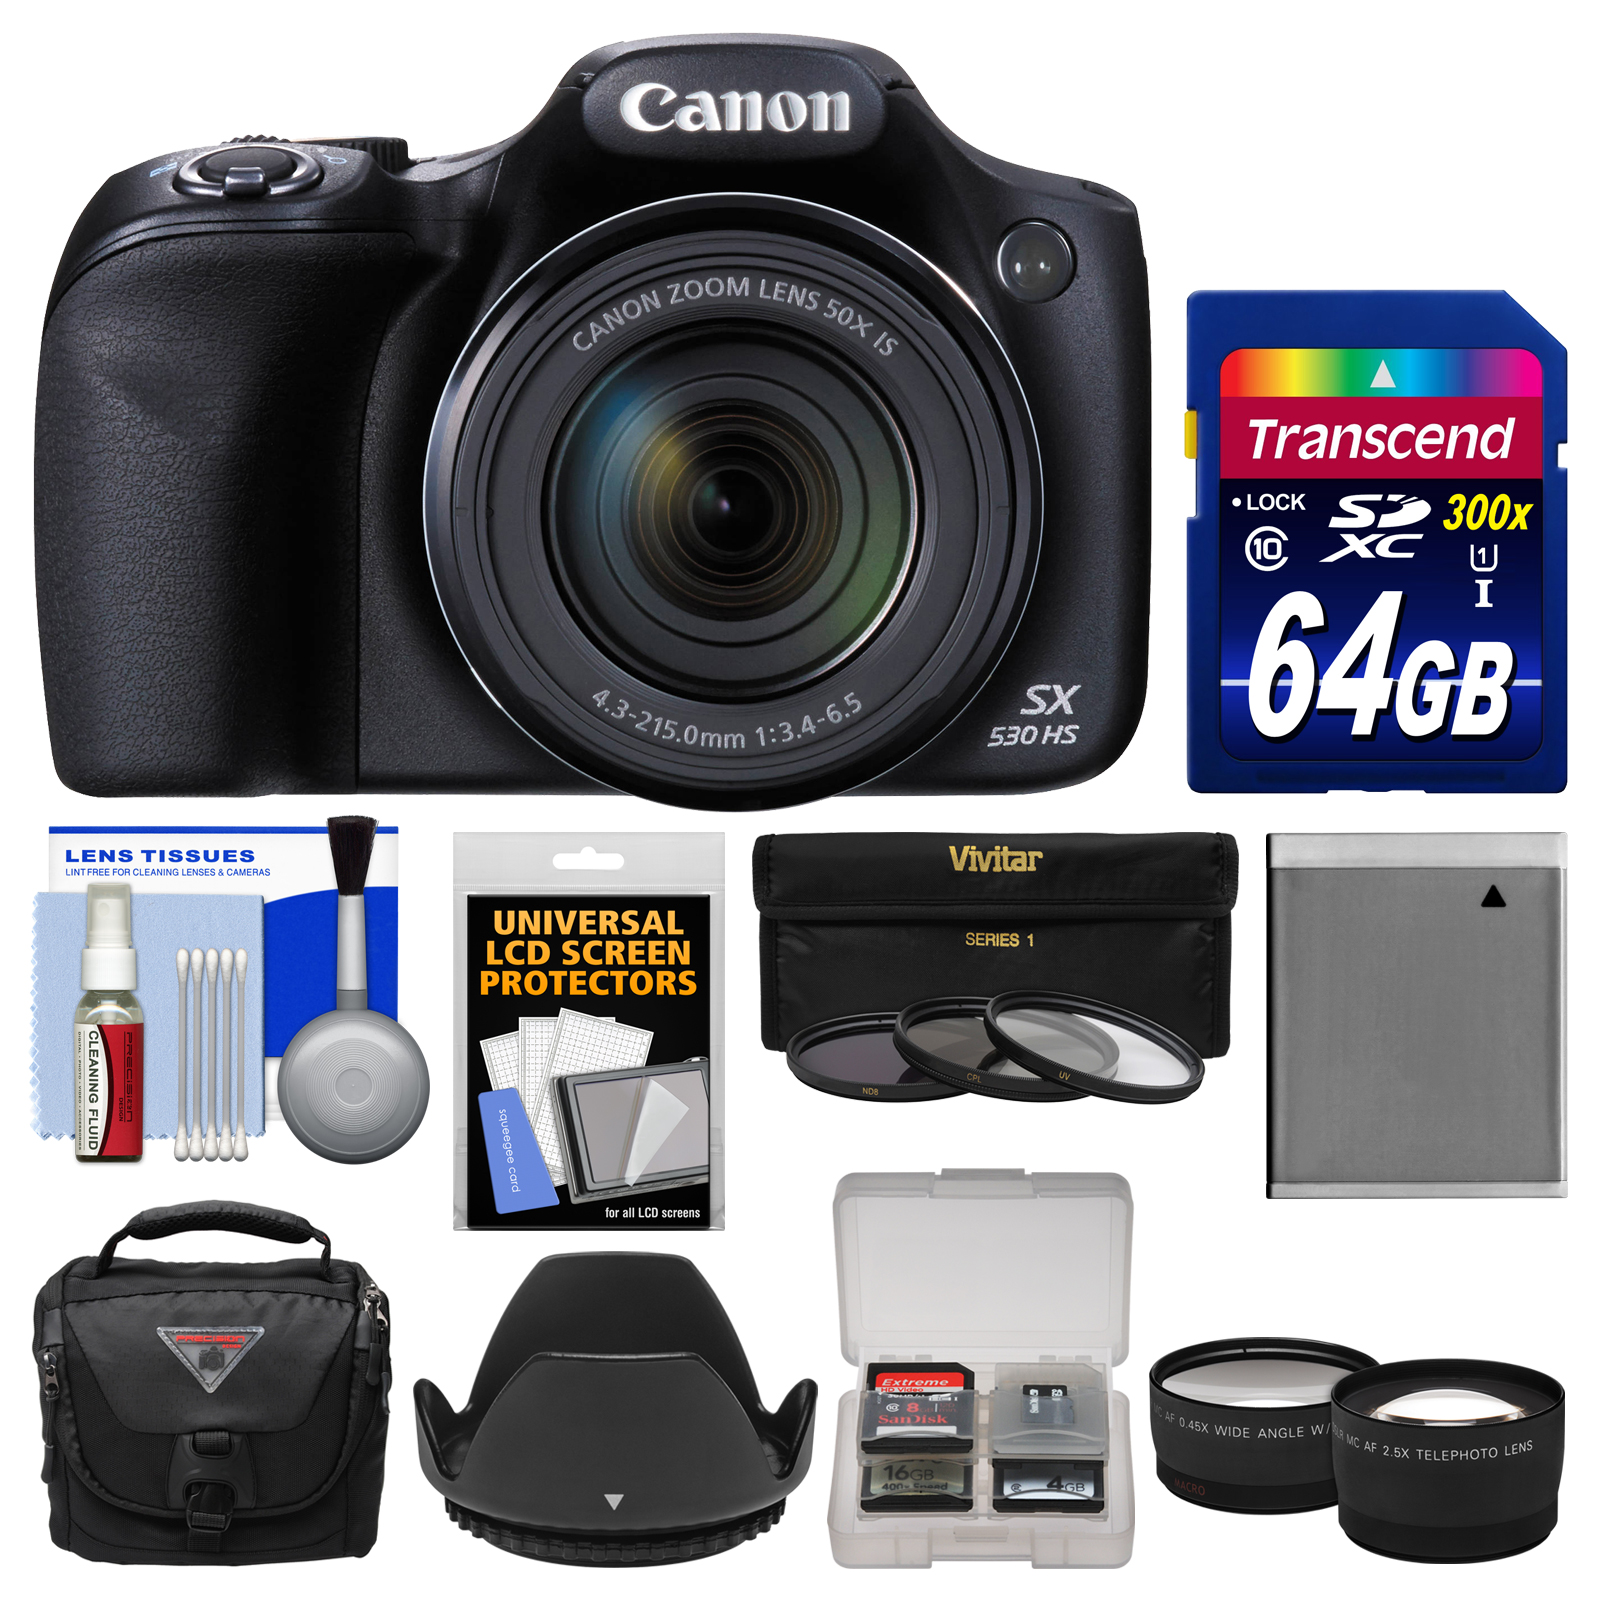 Canon PowerShot SX530 HS Wi-Fi Digital Camera with 64GB Card + Case + Battery + 3 Filters + Tele/Wide Lens Kit